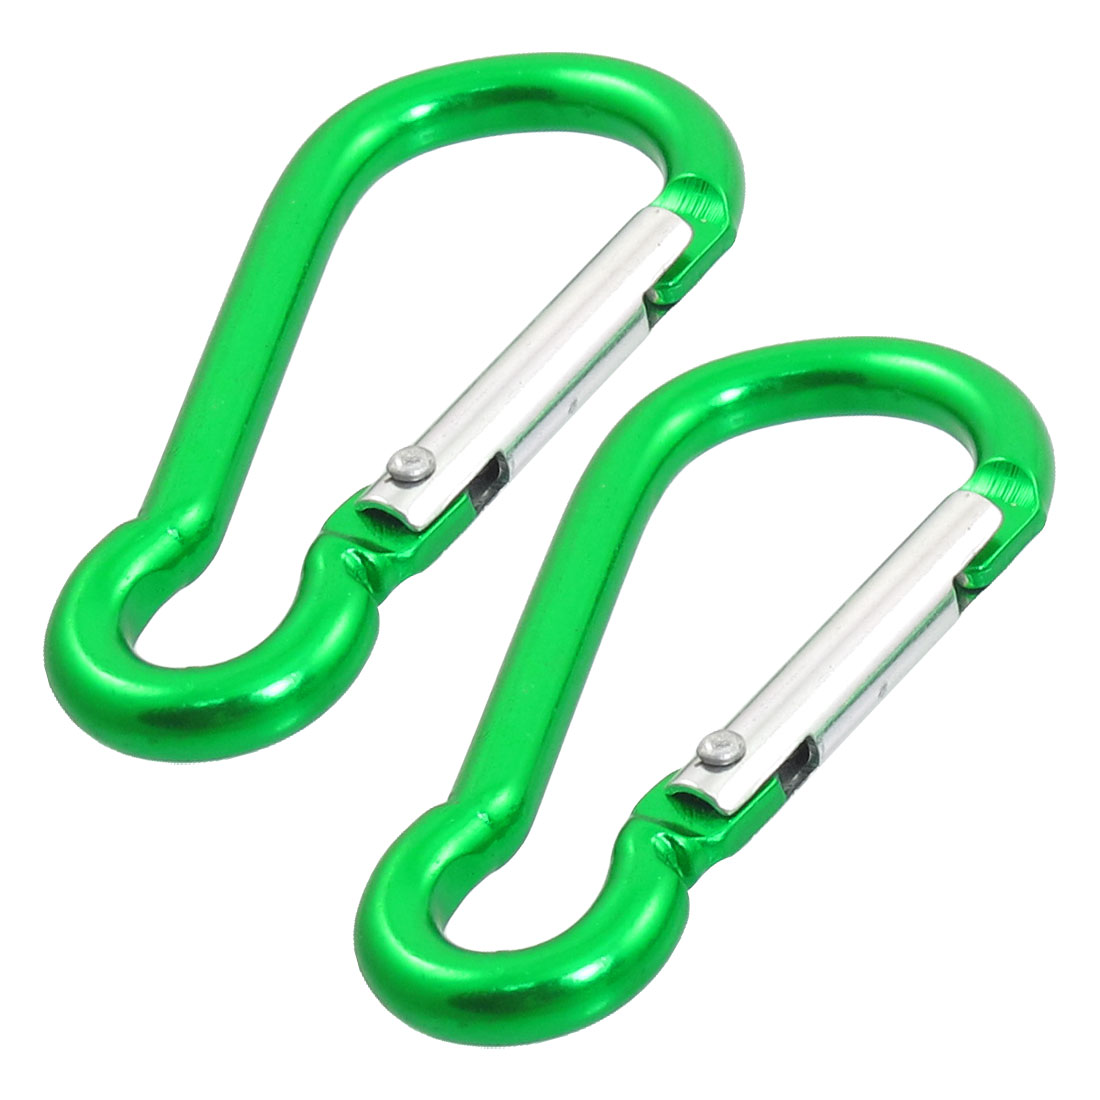 Green Aluminum Alloy Spring Loaded Lock Carabiner Hiking Clip Hook Pair